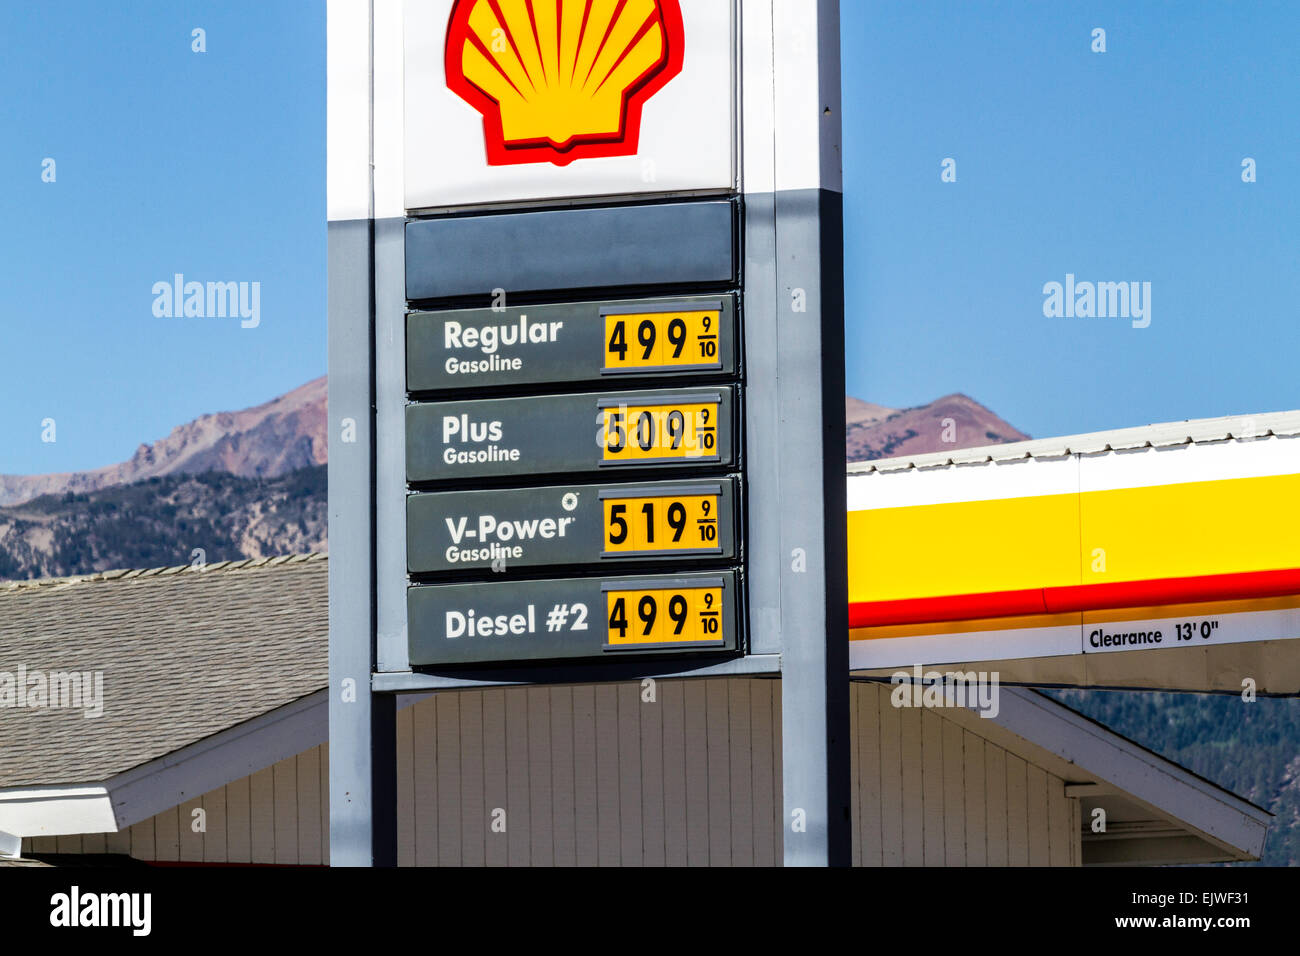 Cheap Gas Prices Near Me >> The Shell Gas Station In Bridgeport California With Very High Gas